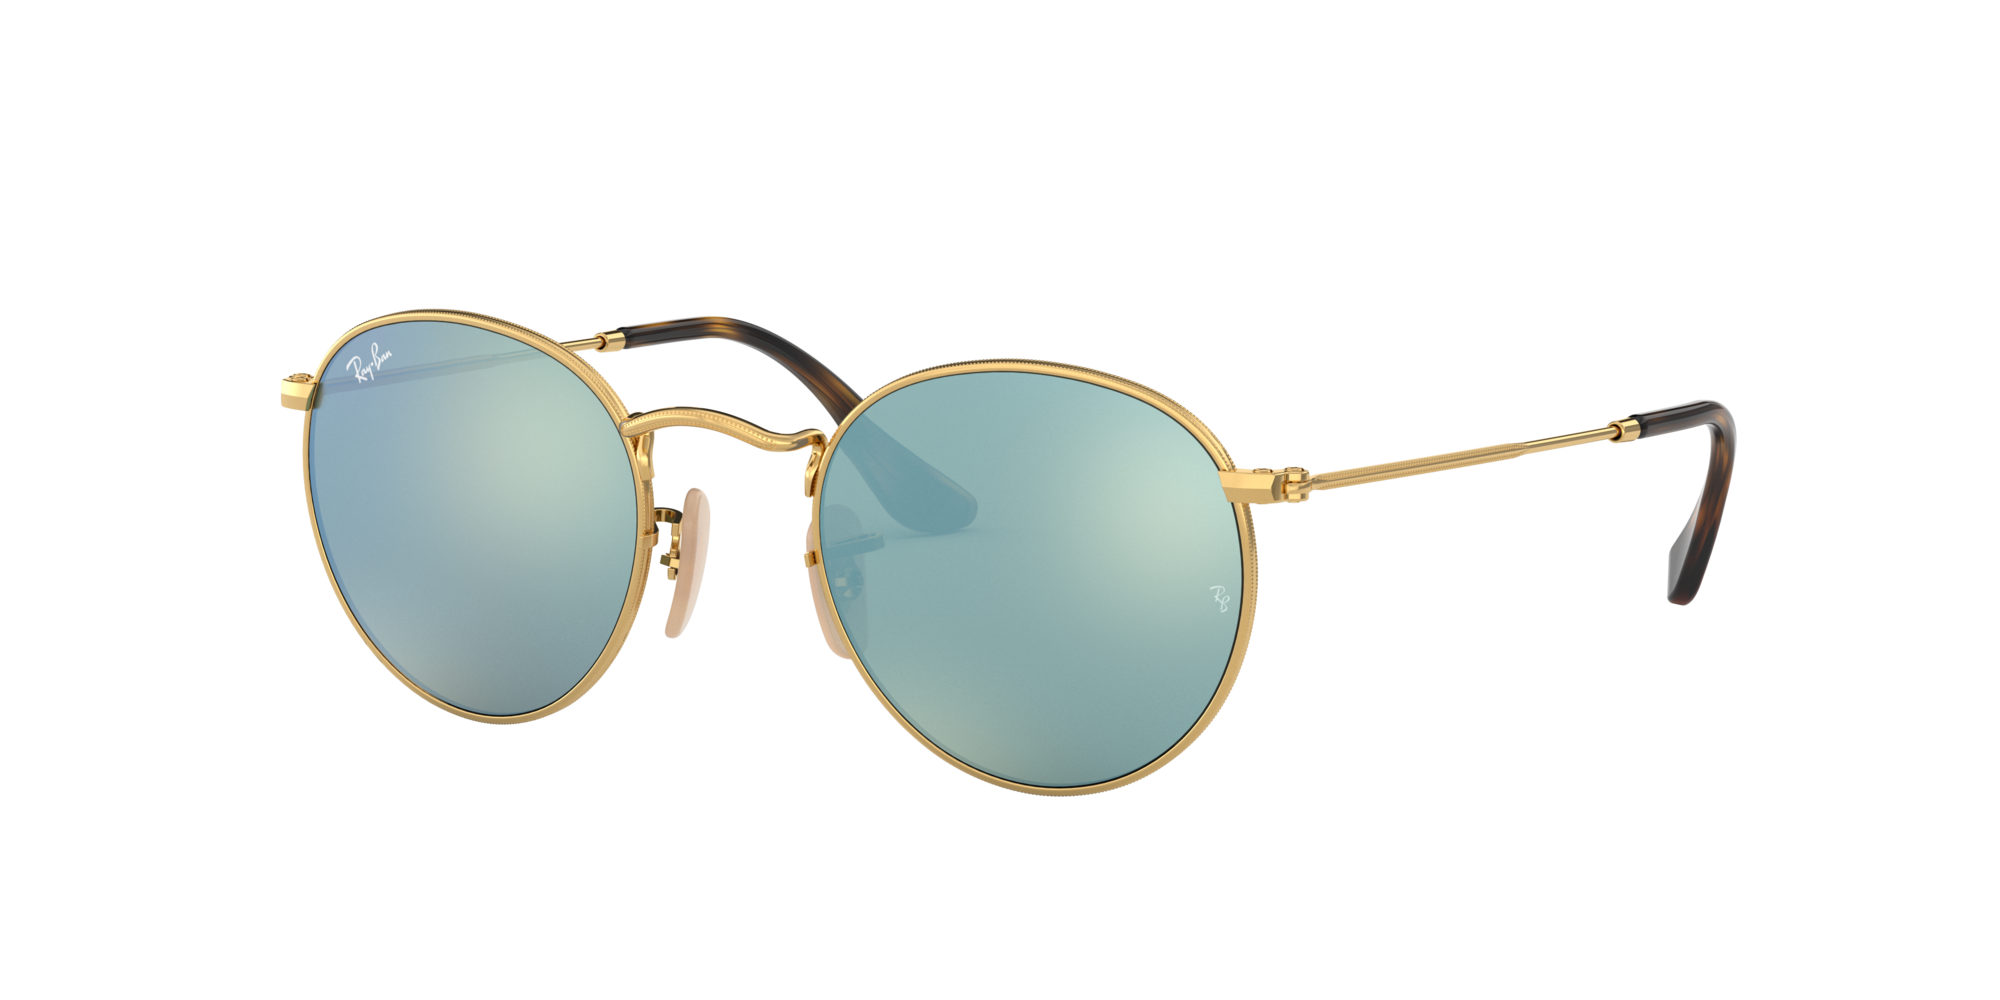 Ray-Ban Unisex  RB3447N ROUND FLAT LENSES -  Frame color: Gold, Lens color: Silver Flash, Size 47-21/140